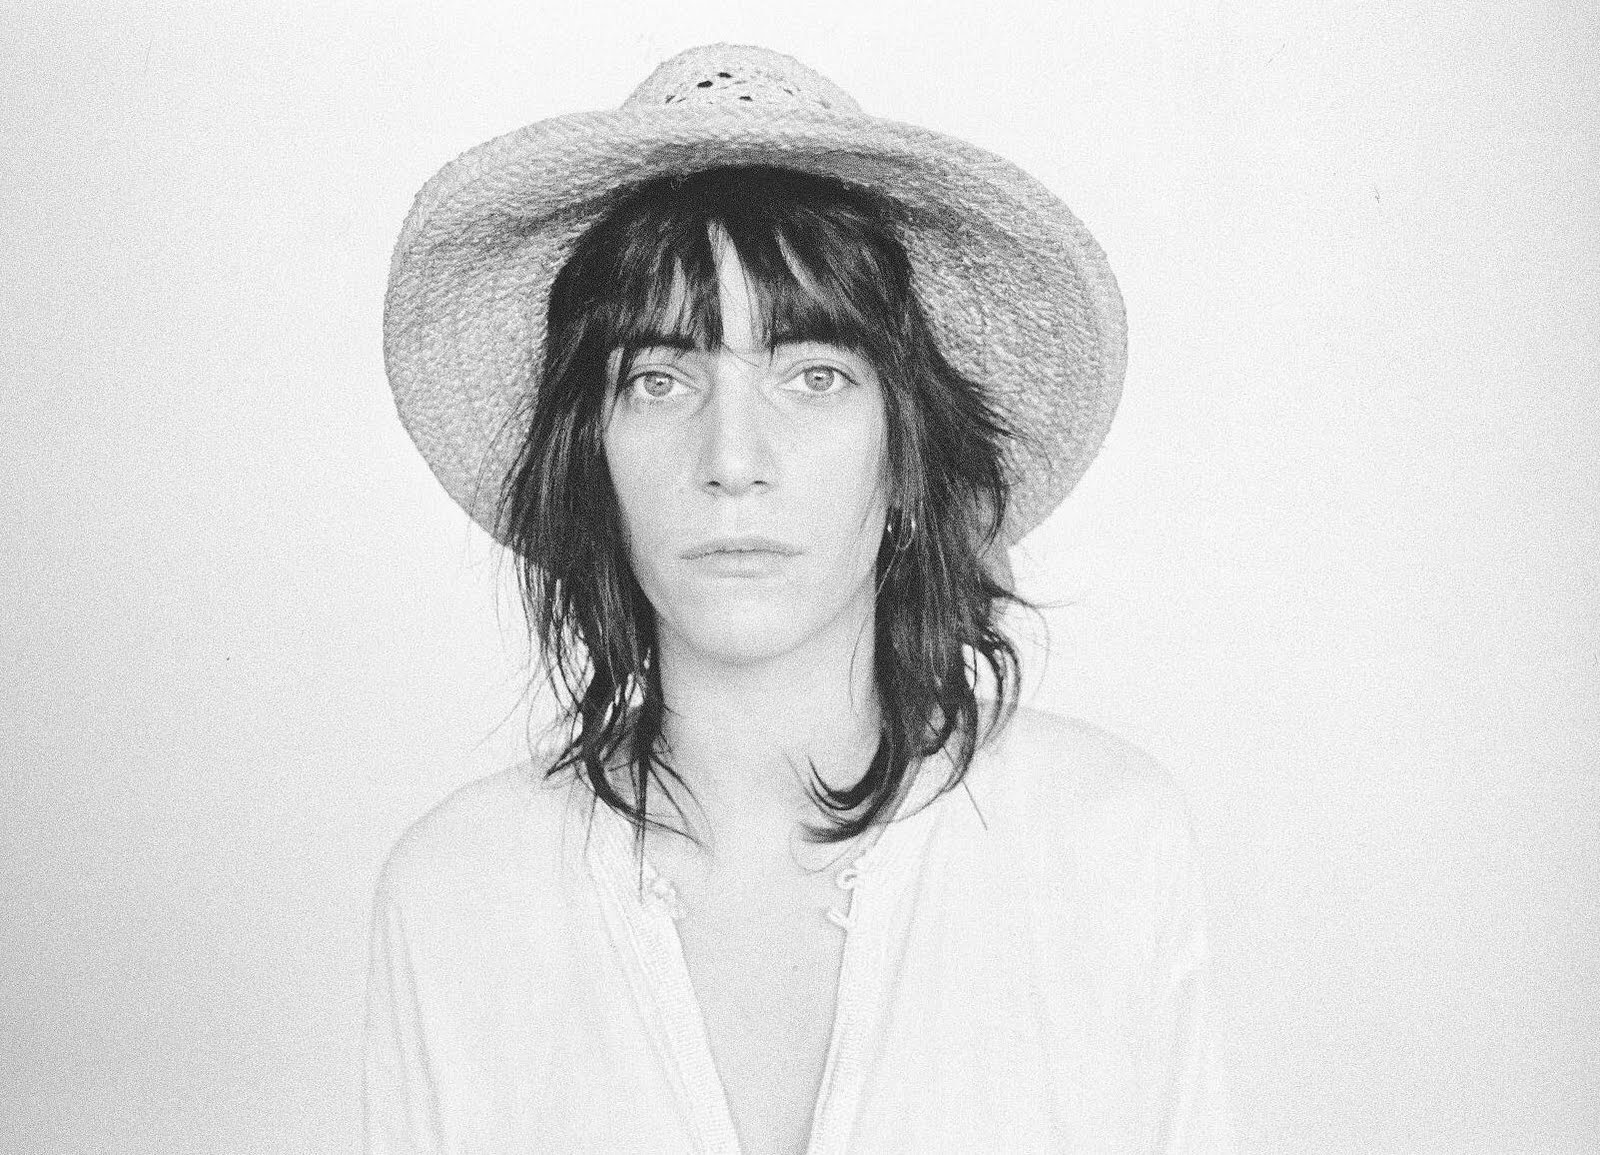 http://thethinkingtank.files.wordpress.com/2011/07/patti-smith-by-judy-linn-7.jpg